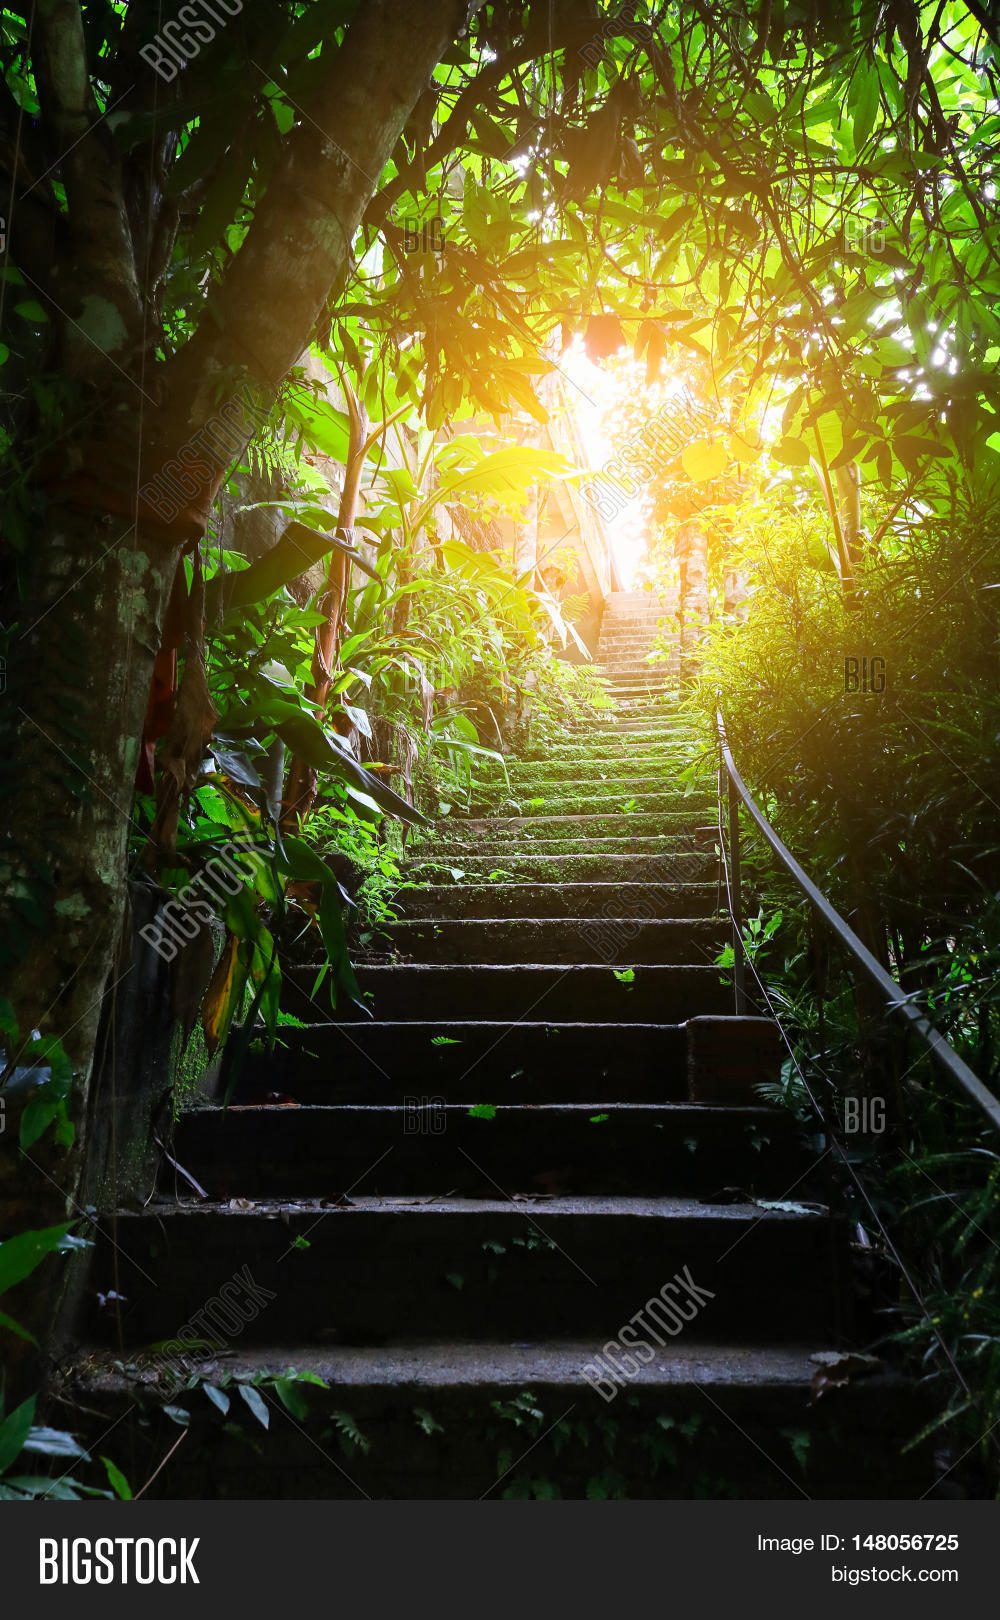 Perfect Stair In Forest And Light In Dark. (Thereu0027s A Light At The End Of